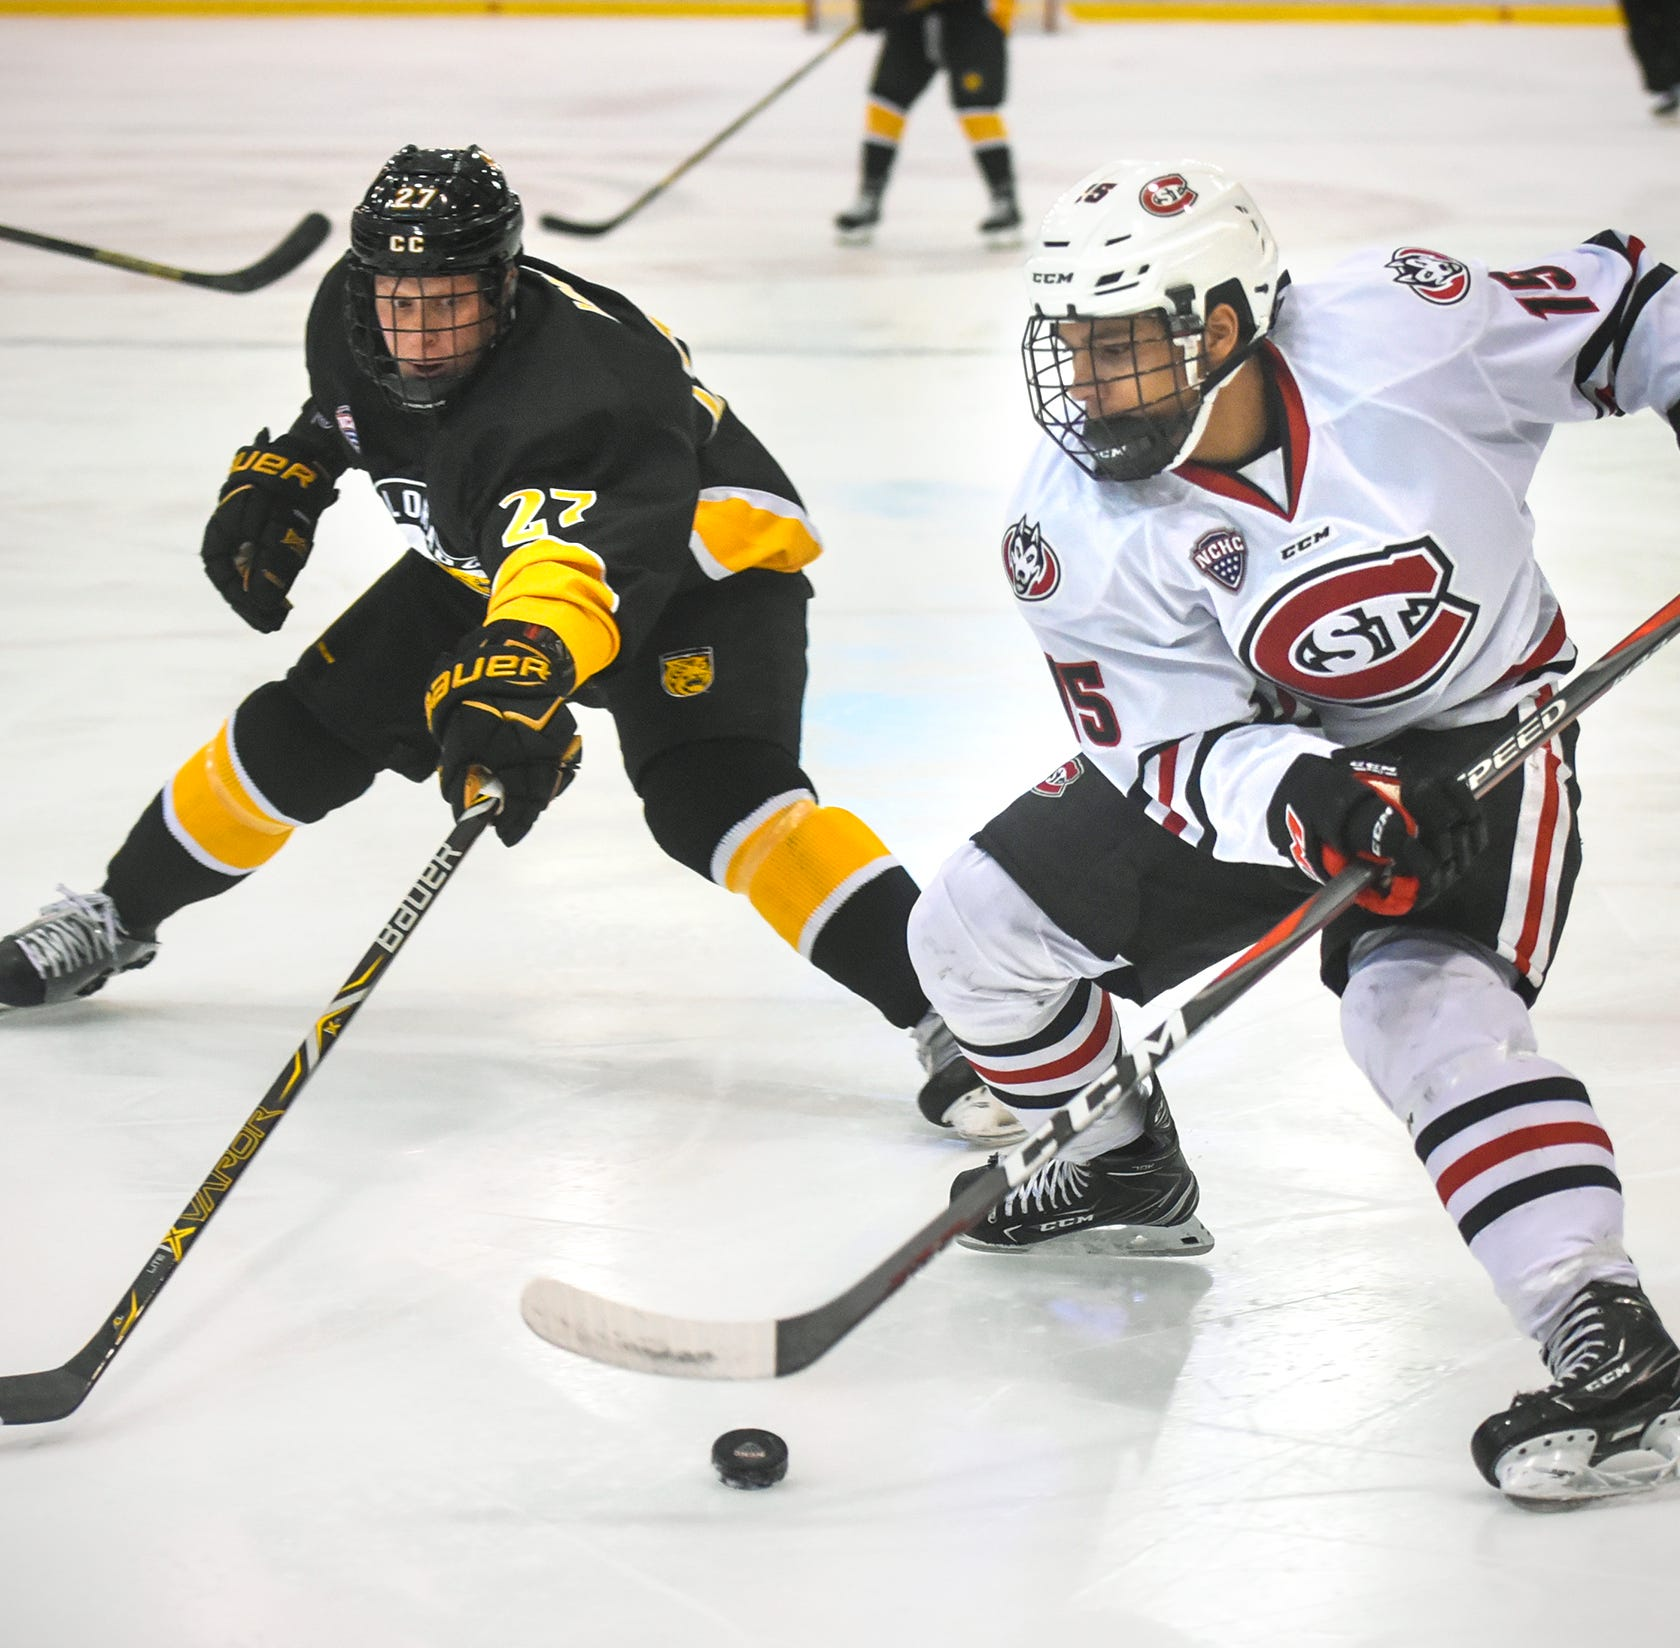 St. Cloud Huskies to face Colorado College at Frozen Faceoff